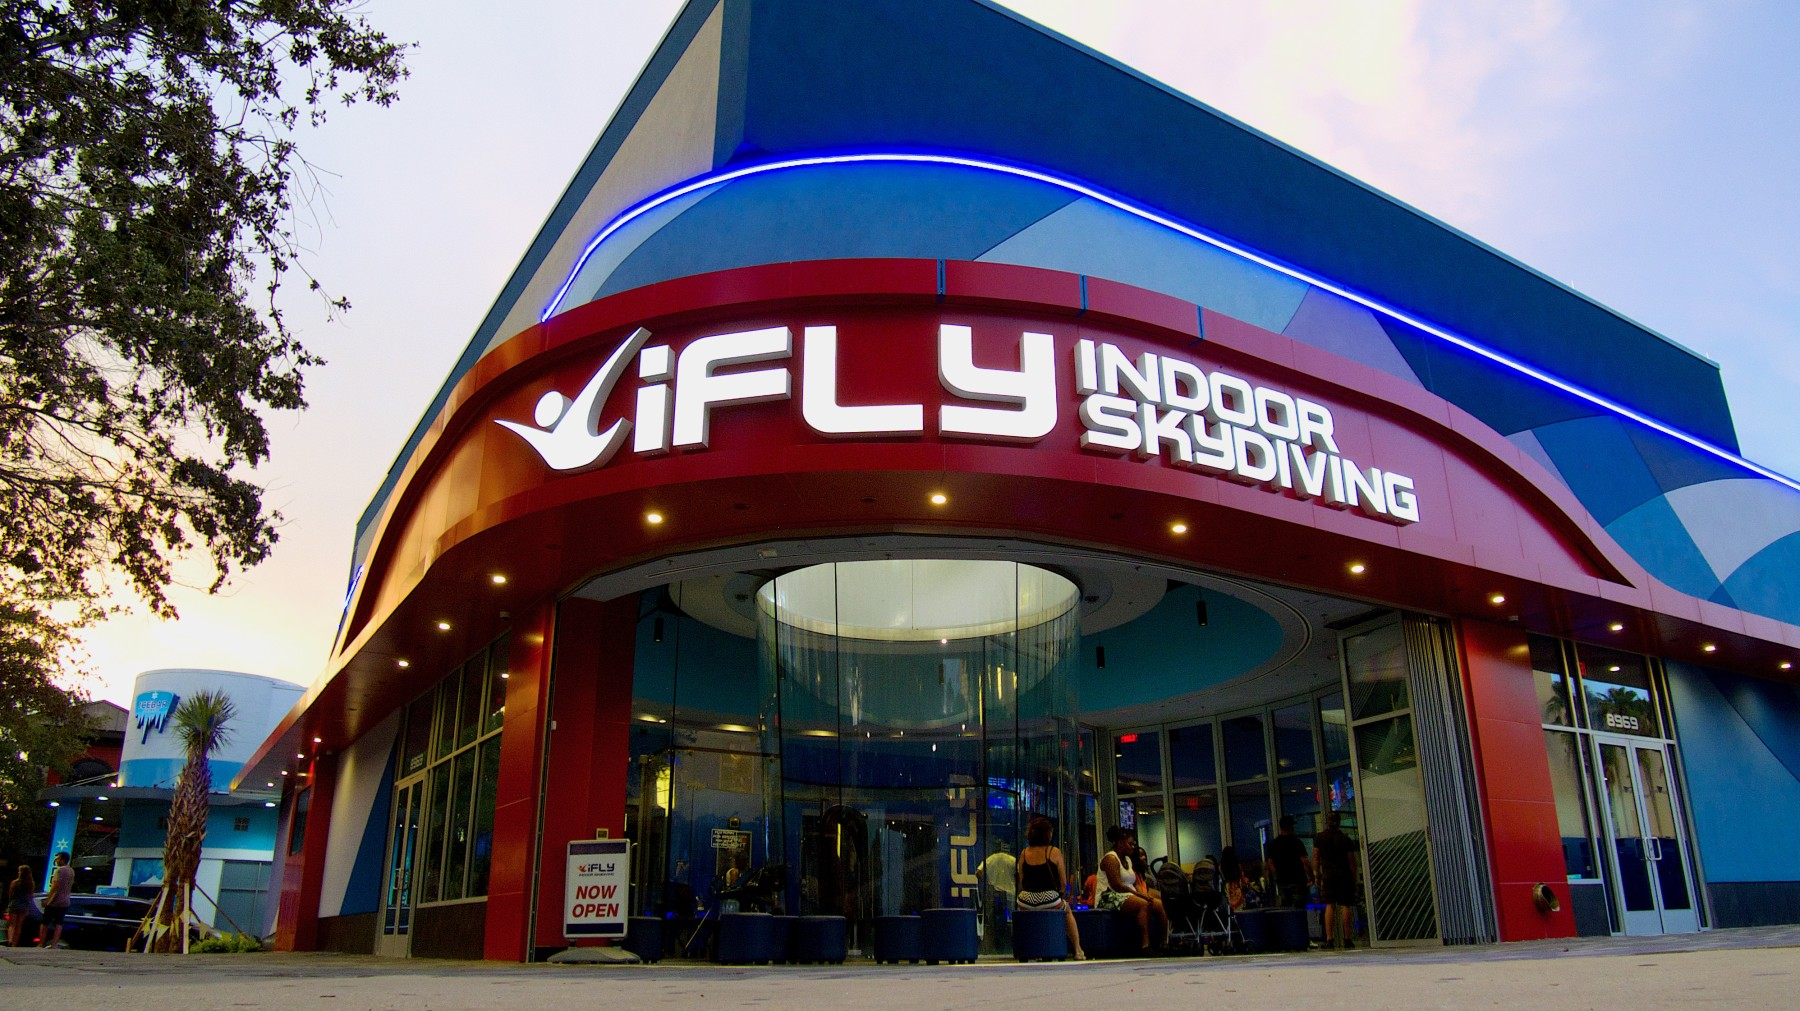 iFLY Orlando on International Drive is a recently announced 2 flight chamber wind tunnel manufactured by SkyVenture that is slated to be opened roughly 3 miles south of the current iFLY Orlando location. This tunnel is to effectively replace the existing Orlando location when it opens in early